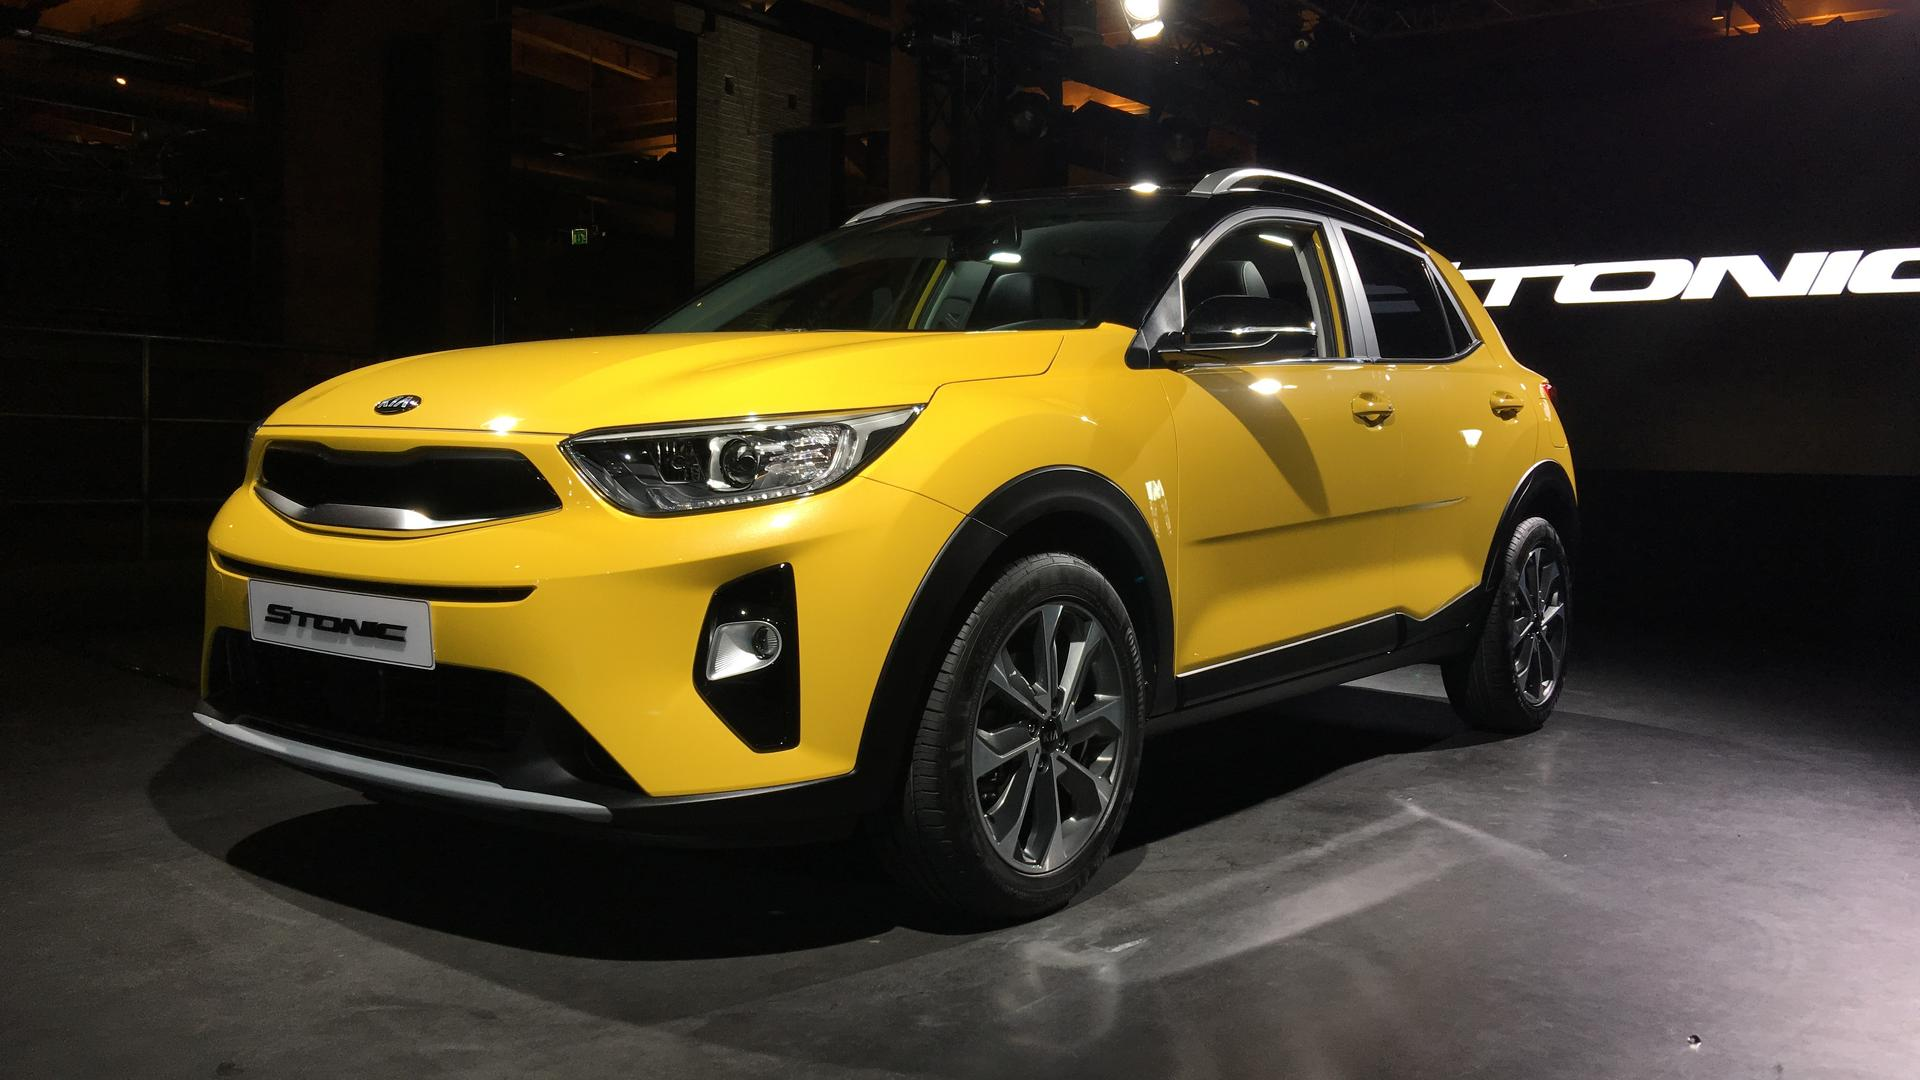 Mini Supercars For Sale >> 2018 Kia Stonic Subcompact Crossover Debuts In The Metal